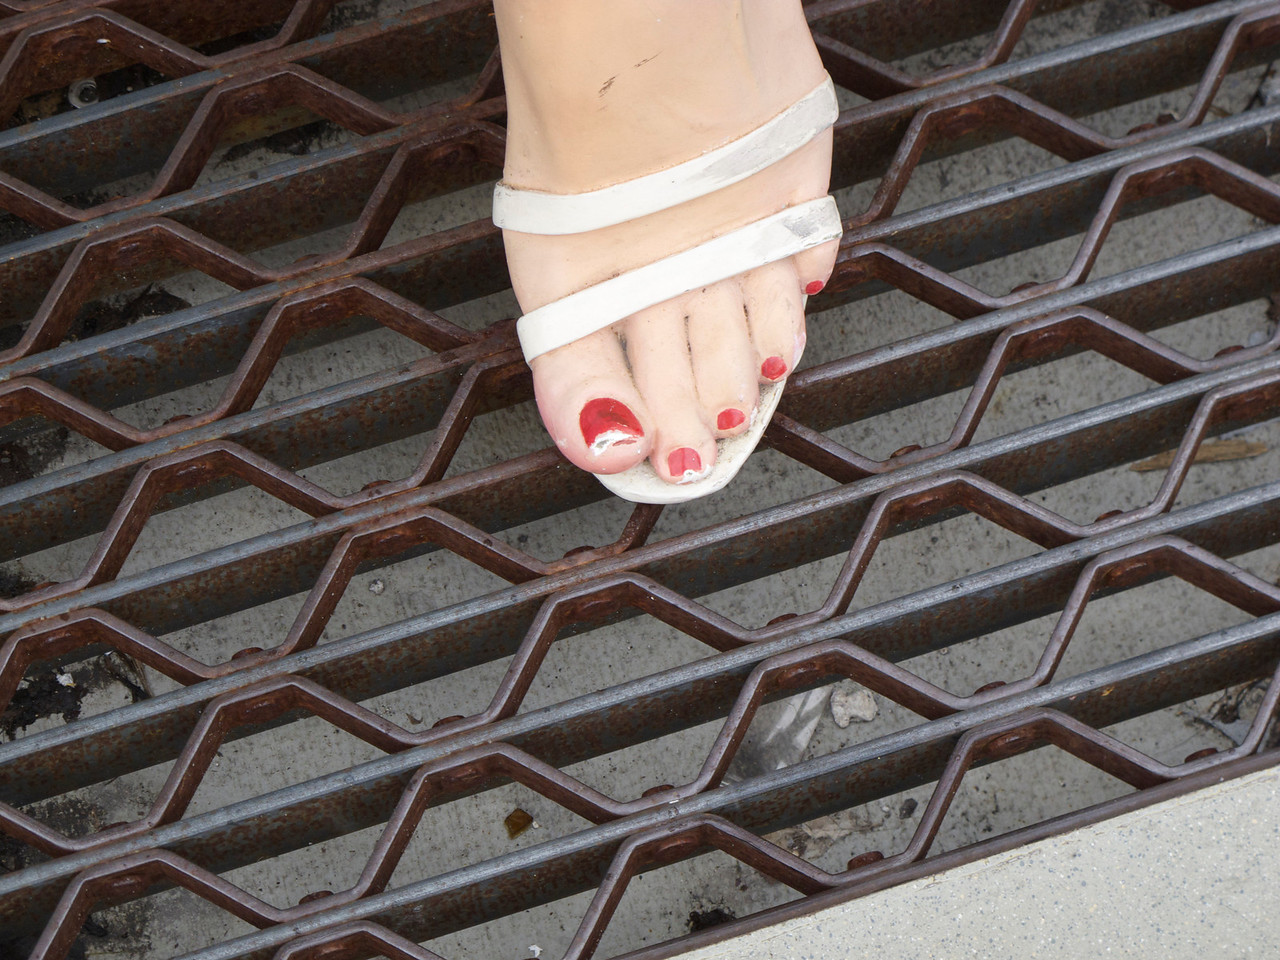 Marilyn needs a pedicure.